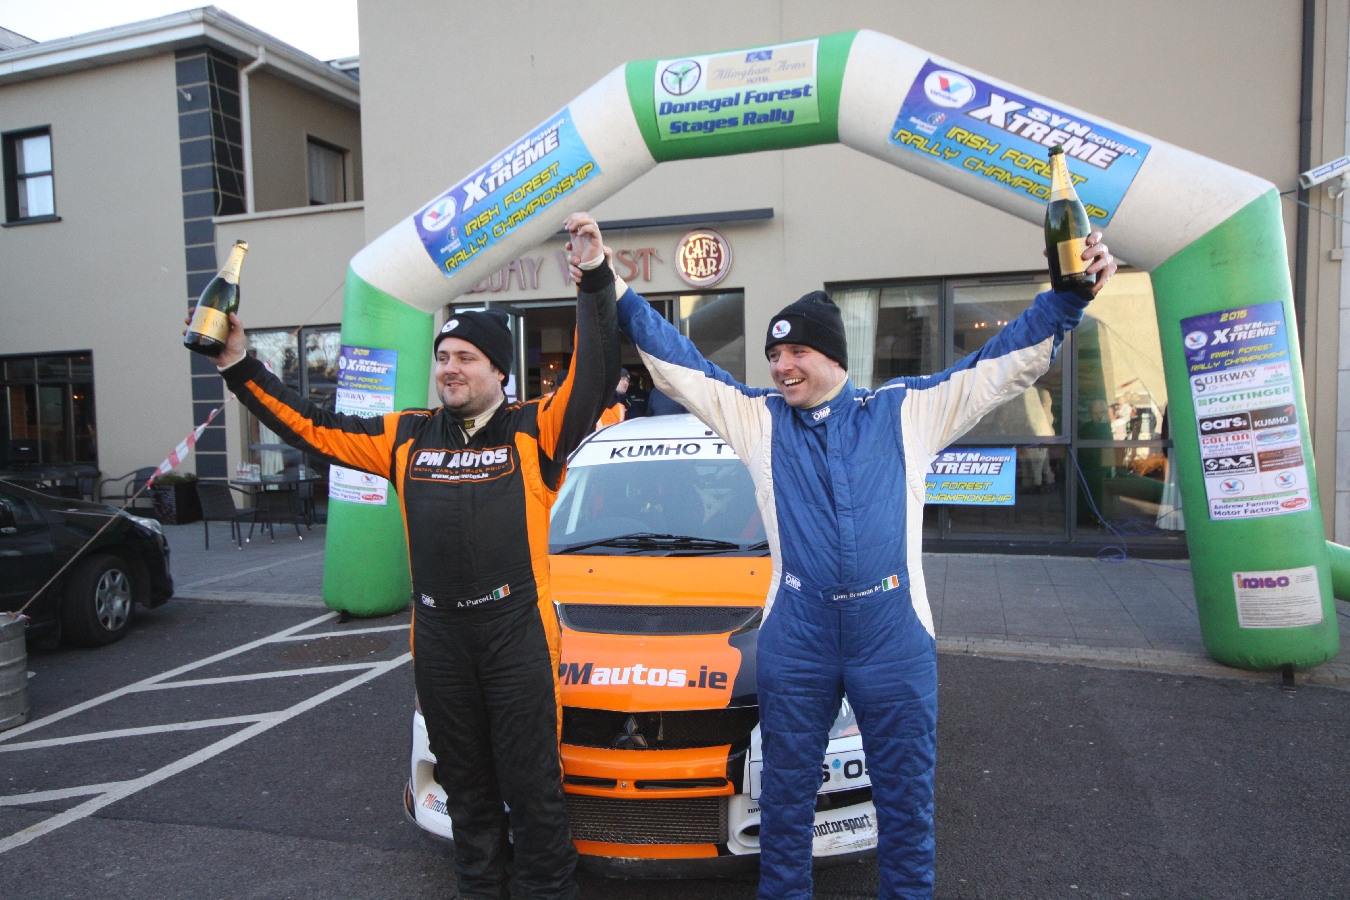 Purcell Powers to Donegal Forest Rally Victory!